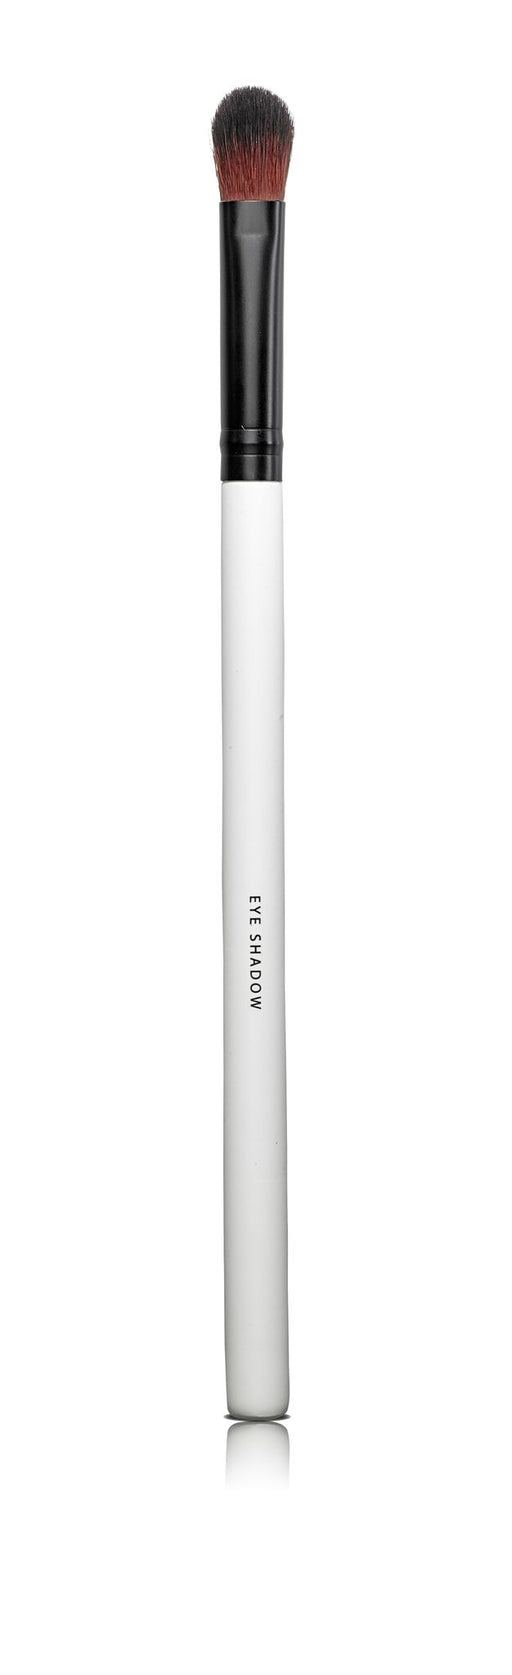 Lily Lolo - Eye Shadow Brush